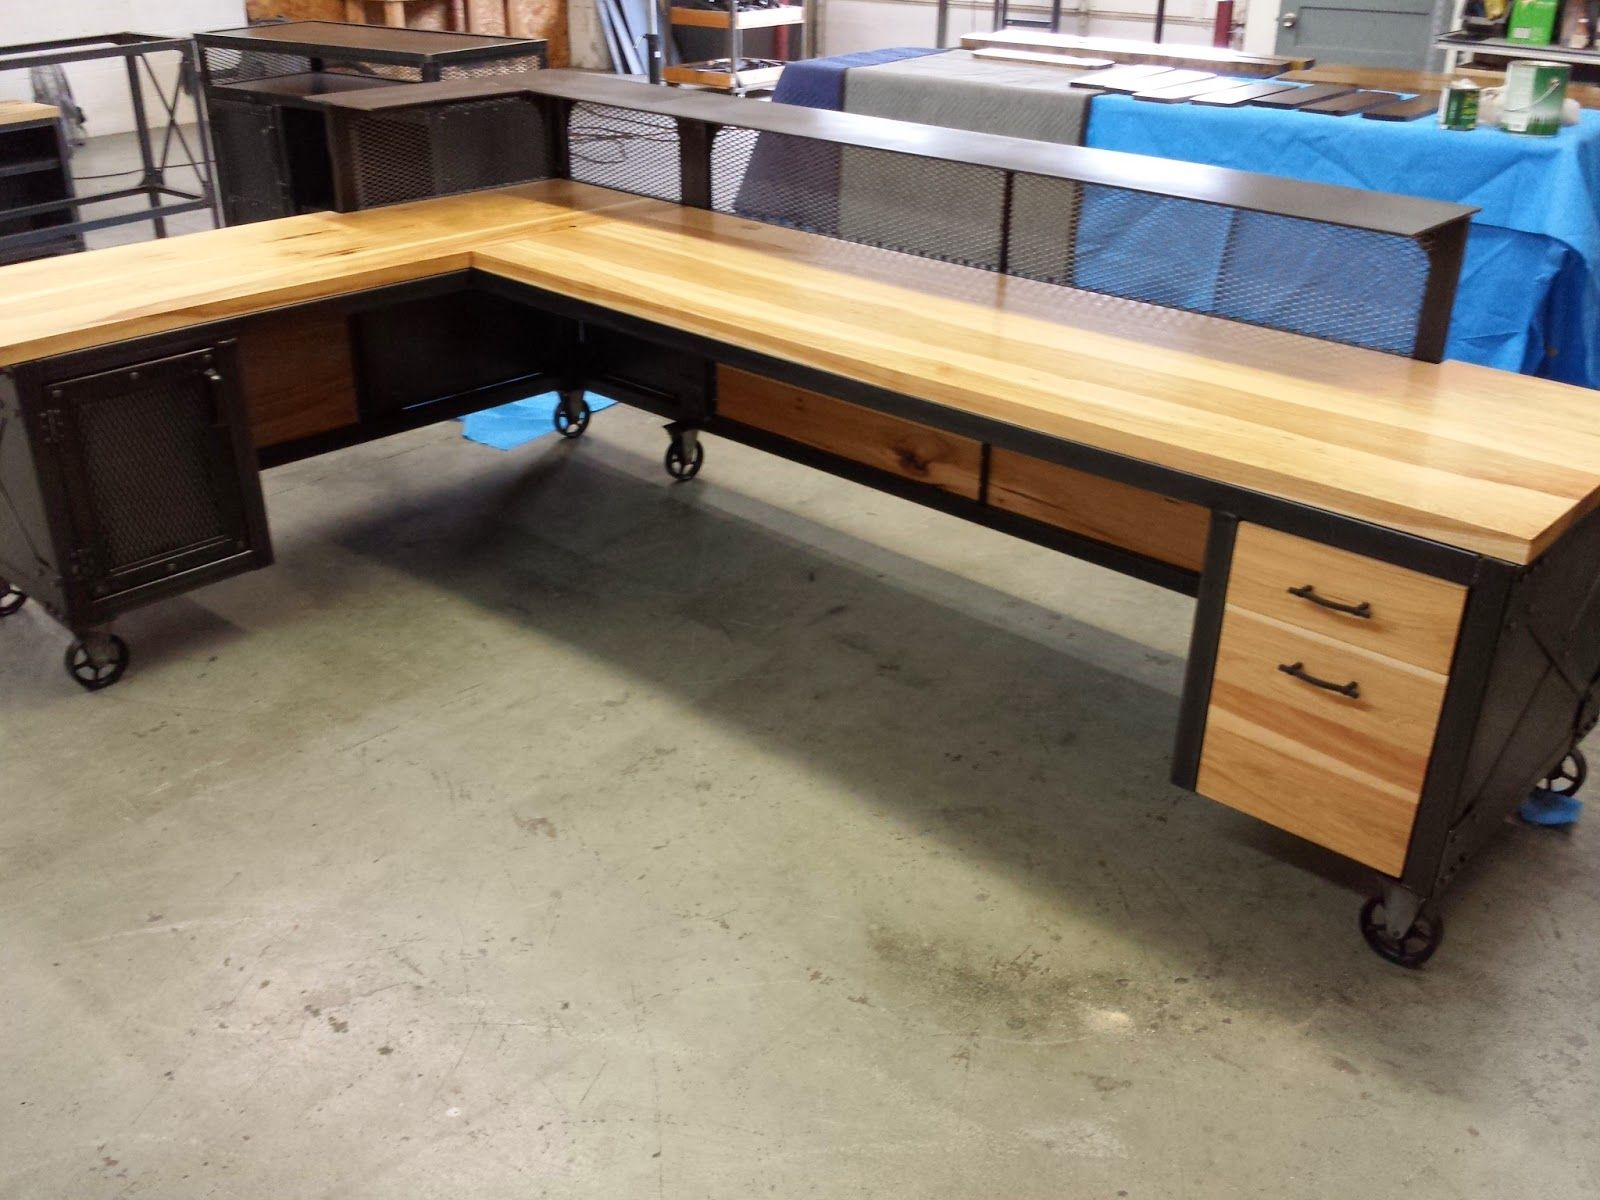 This Is A Very Big Reception Desk For Gandy Ink In Texas About 10 Feet Long On One Side And 7 On Short Side I Put A 1 Industrial Desk Design Desk Desk Design